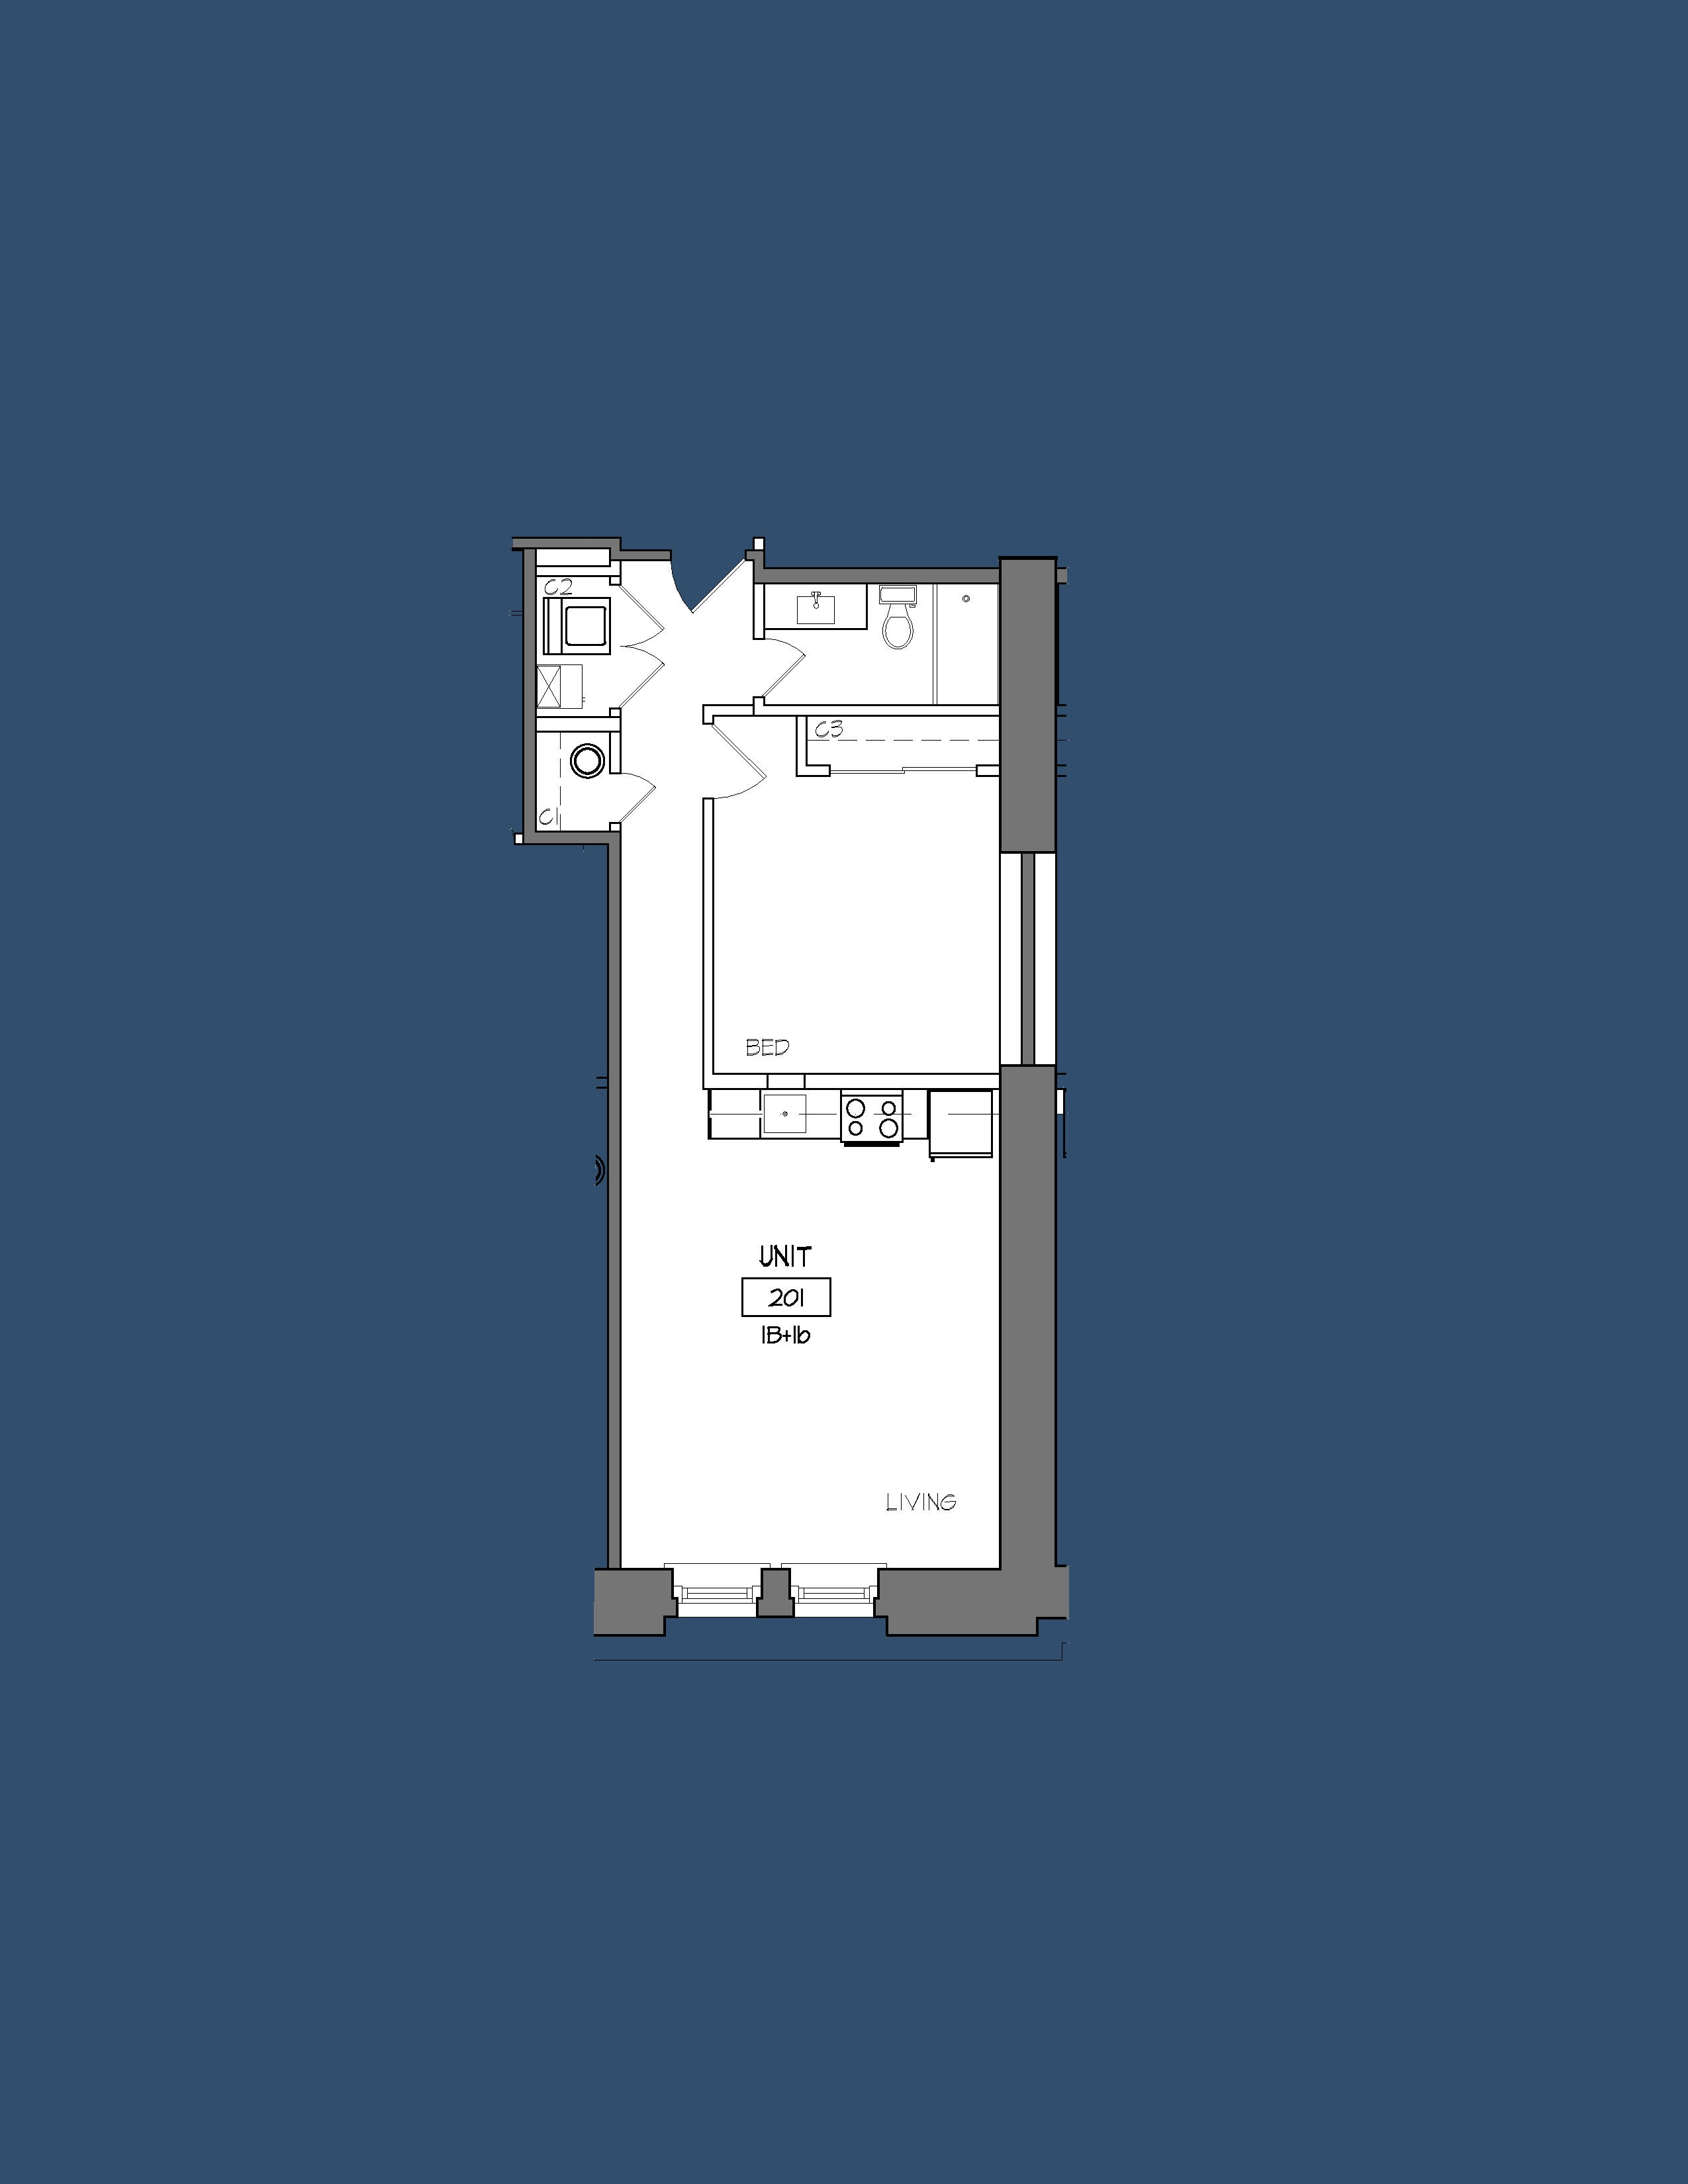 Unit 201 Floor Plan